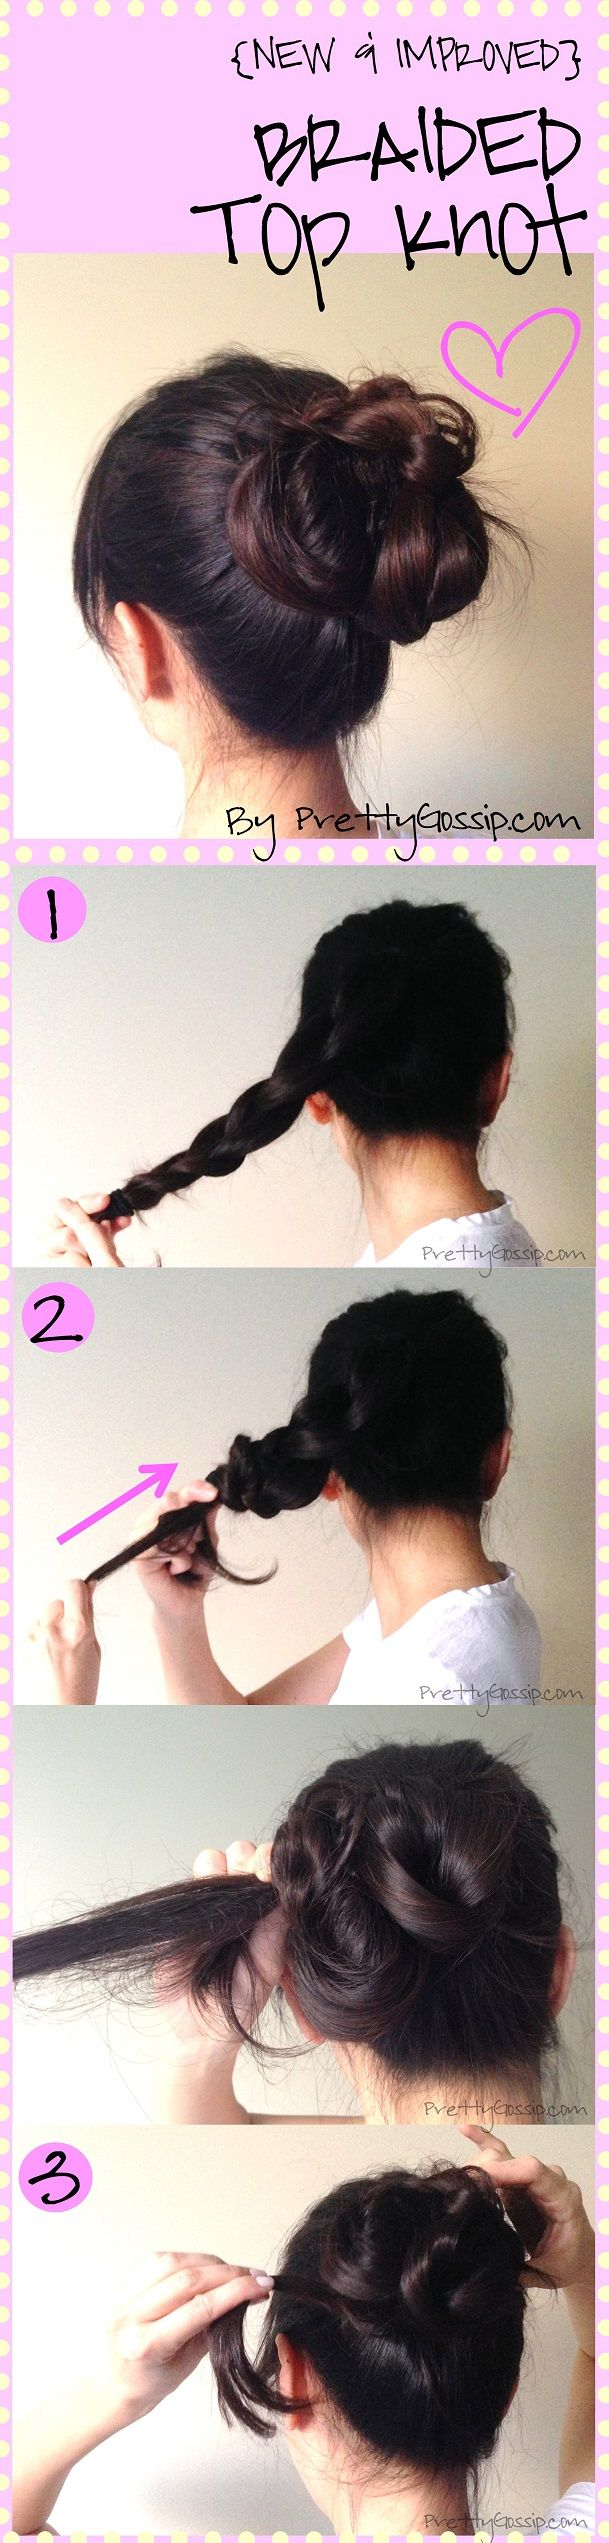 The NEW IMPROVED Top Knot!!!! Tutorial by #PrettyGossip. #hair #topknot